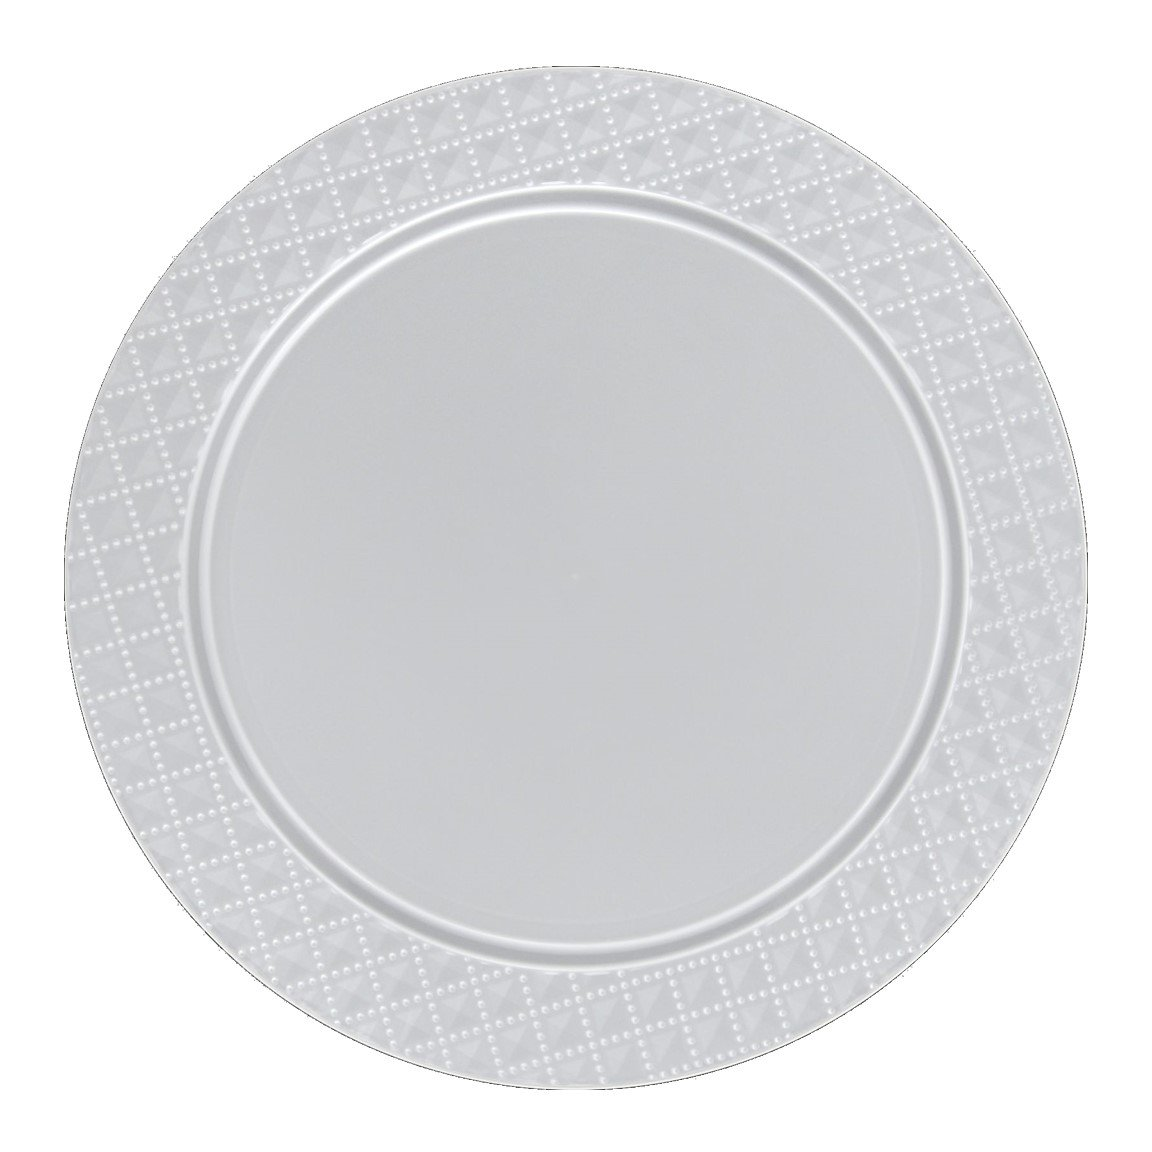 Posh Setting Clear Charger Plates, Diamond Design, Medium Weight 13 inch, Round Plastic Chargers 10 pack